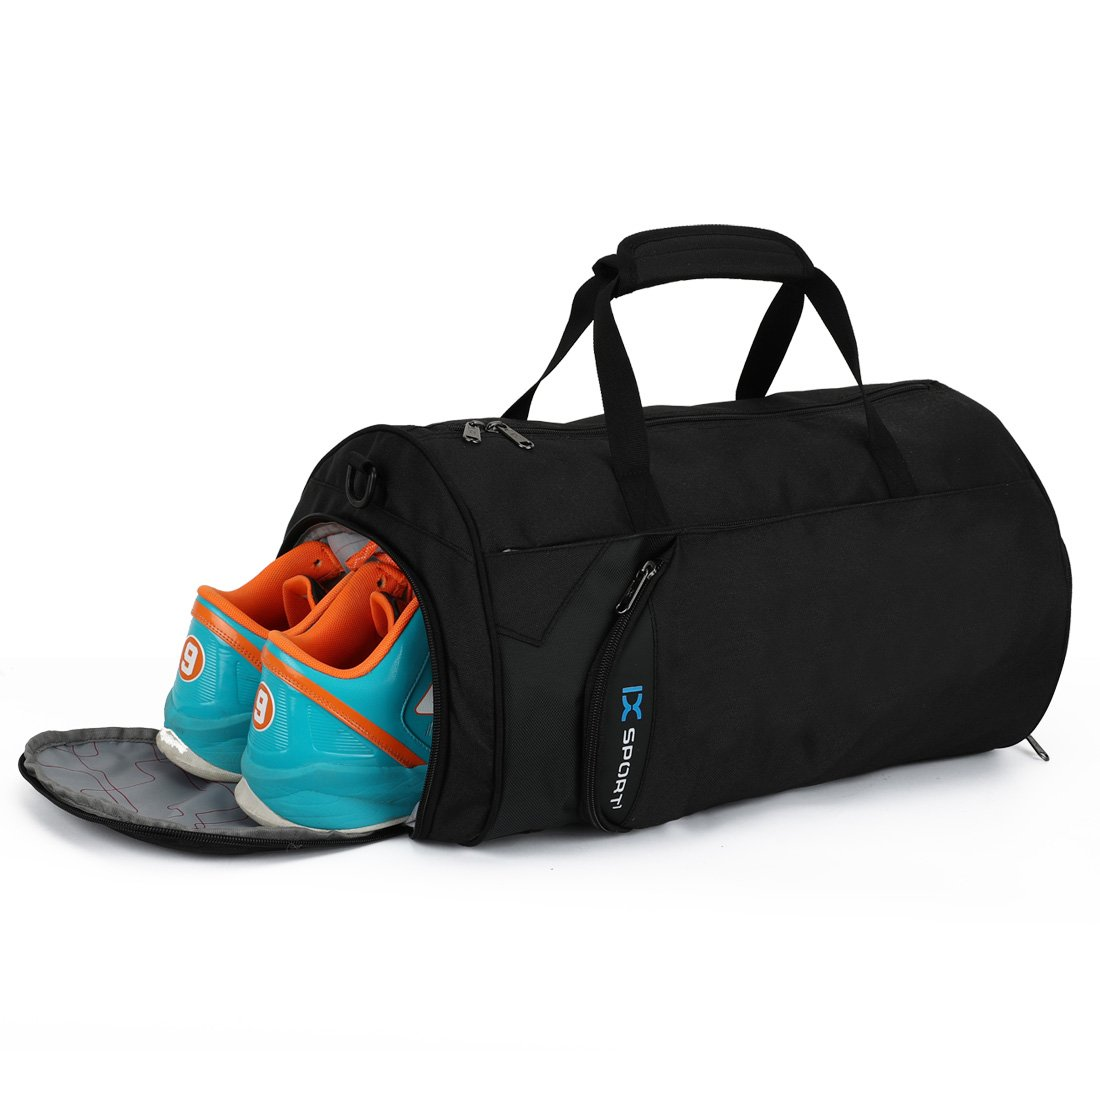 INOXTO Fitness Sport Small Gym Bag with Shoes Compartment Waterproof Travel Duffel Bag for Women and Men by INOXTO